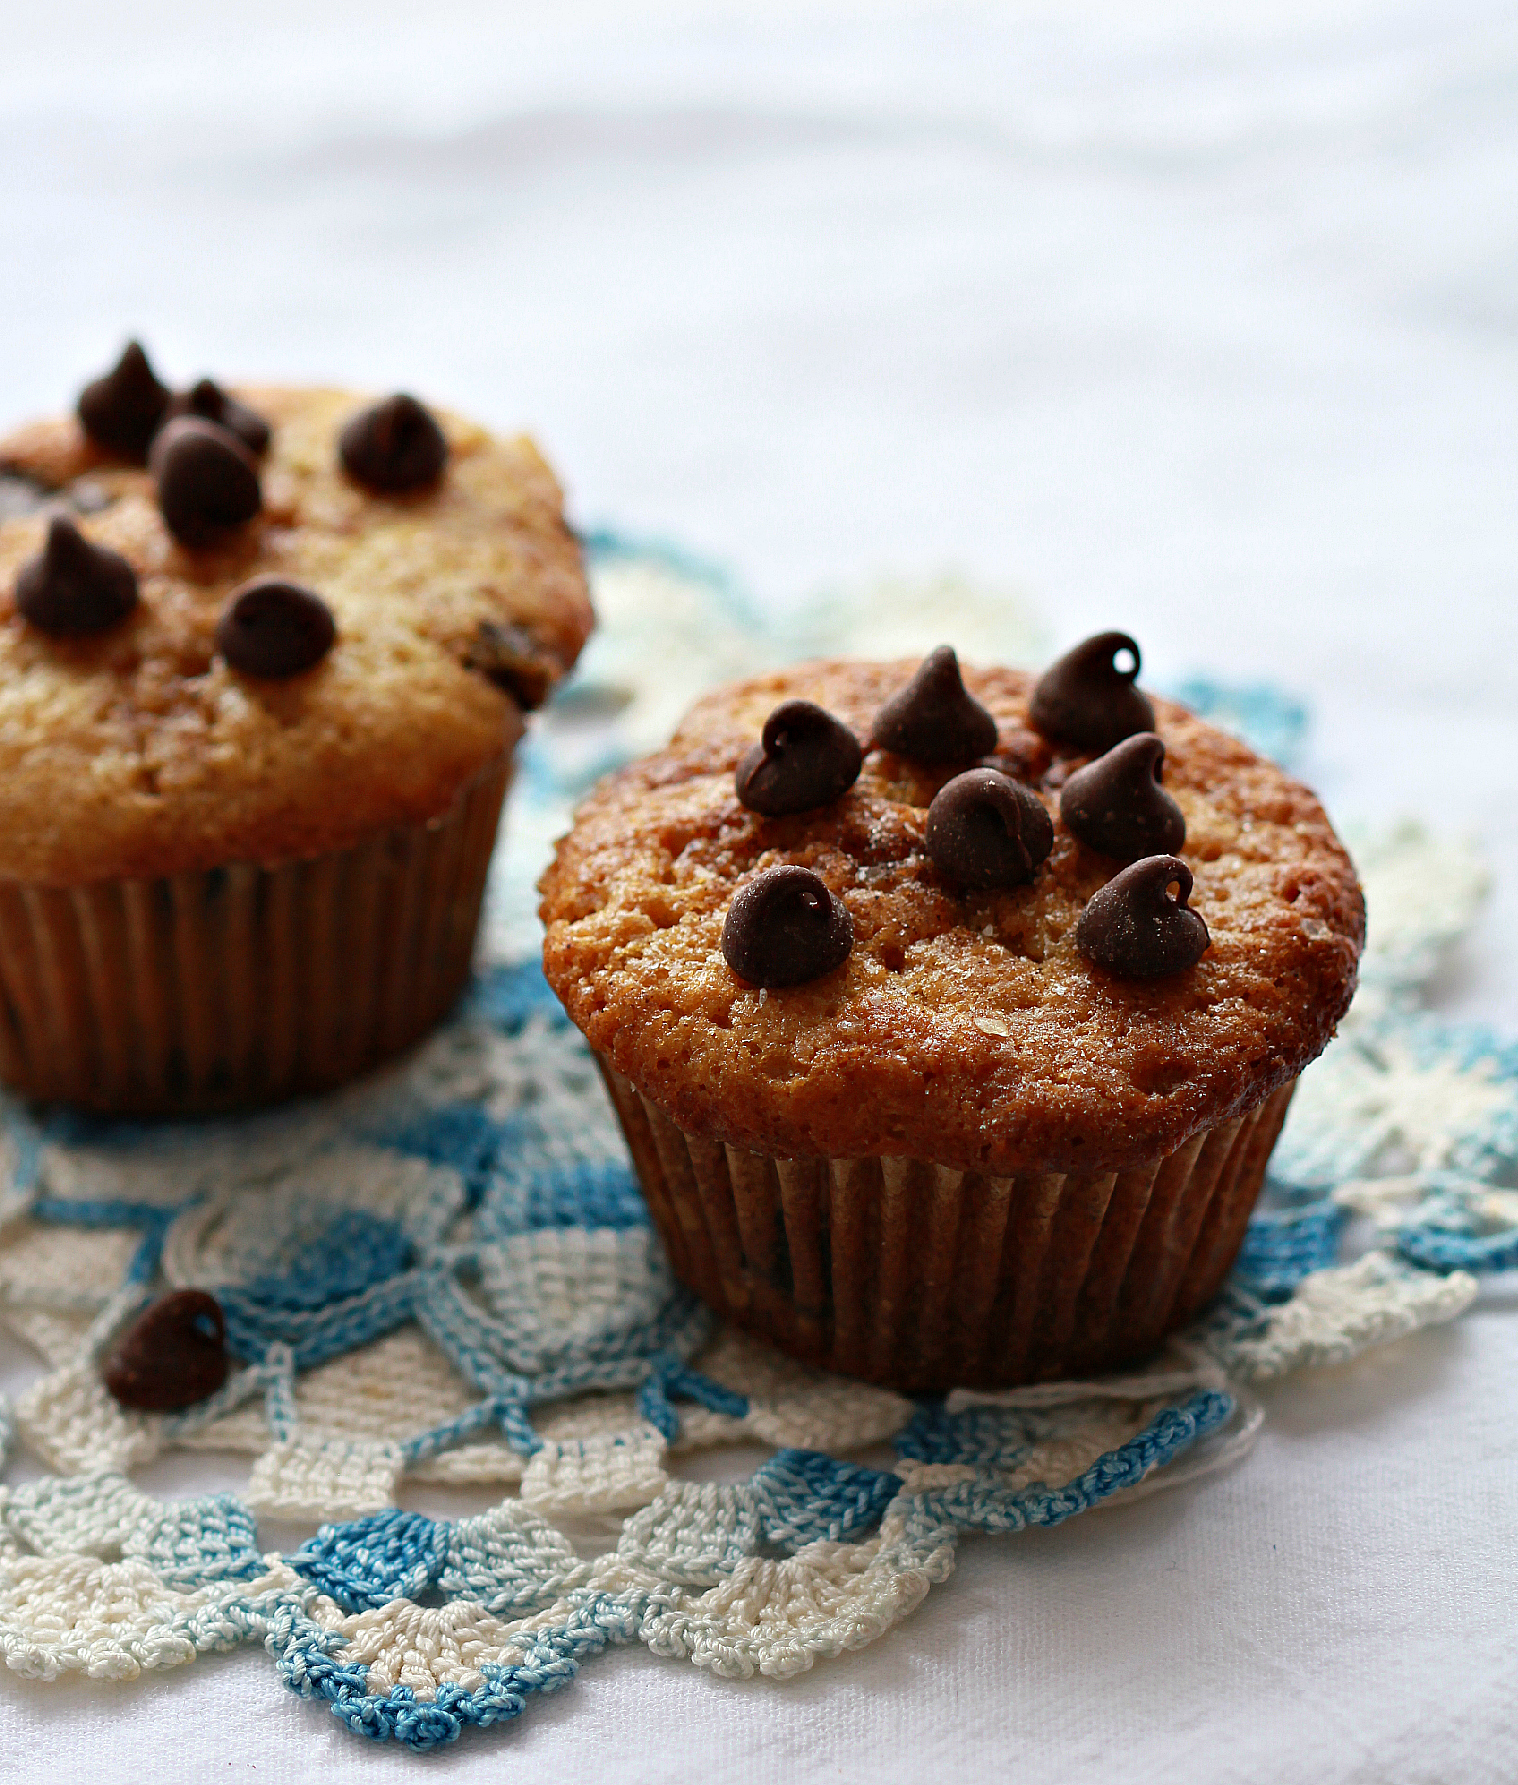 ©Two Dark Chocolate Chip Muffins on Lace by Dena TBray